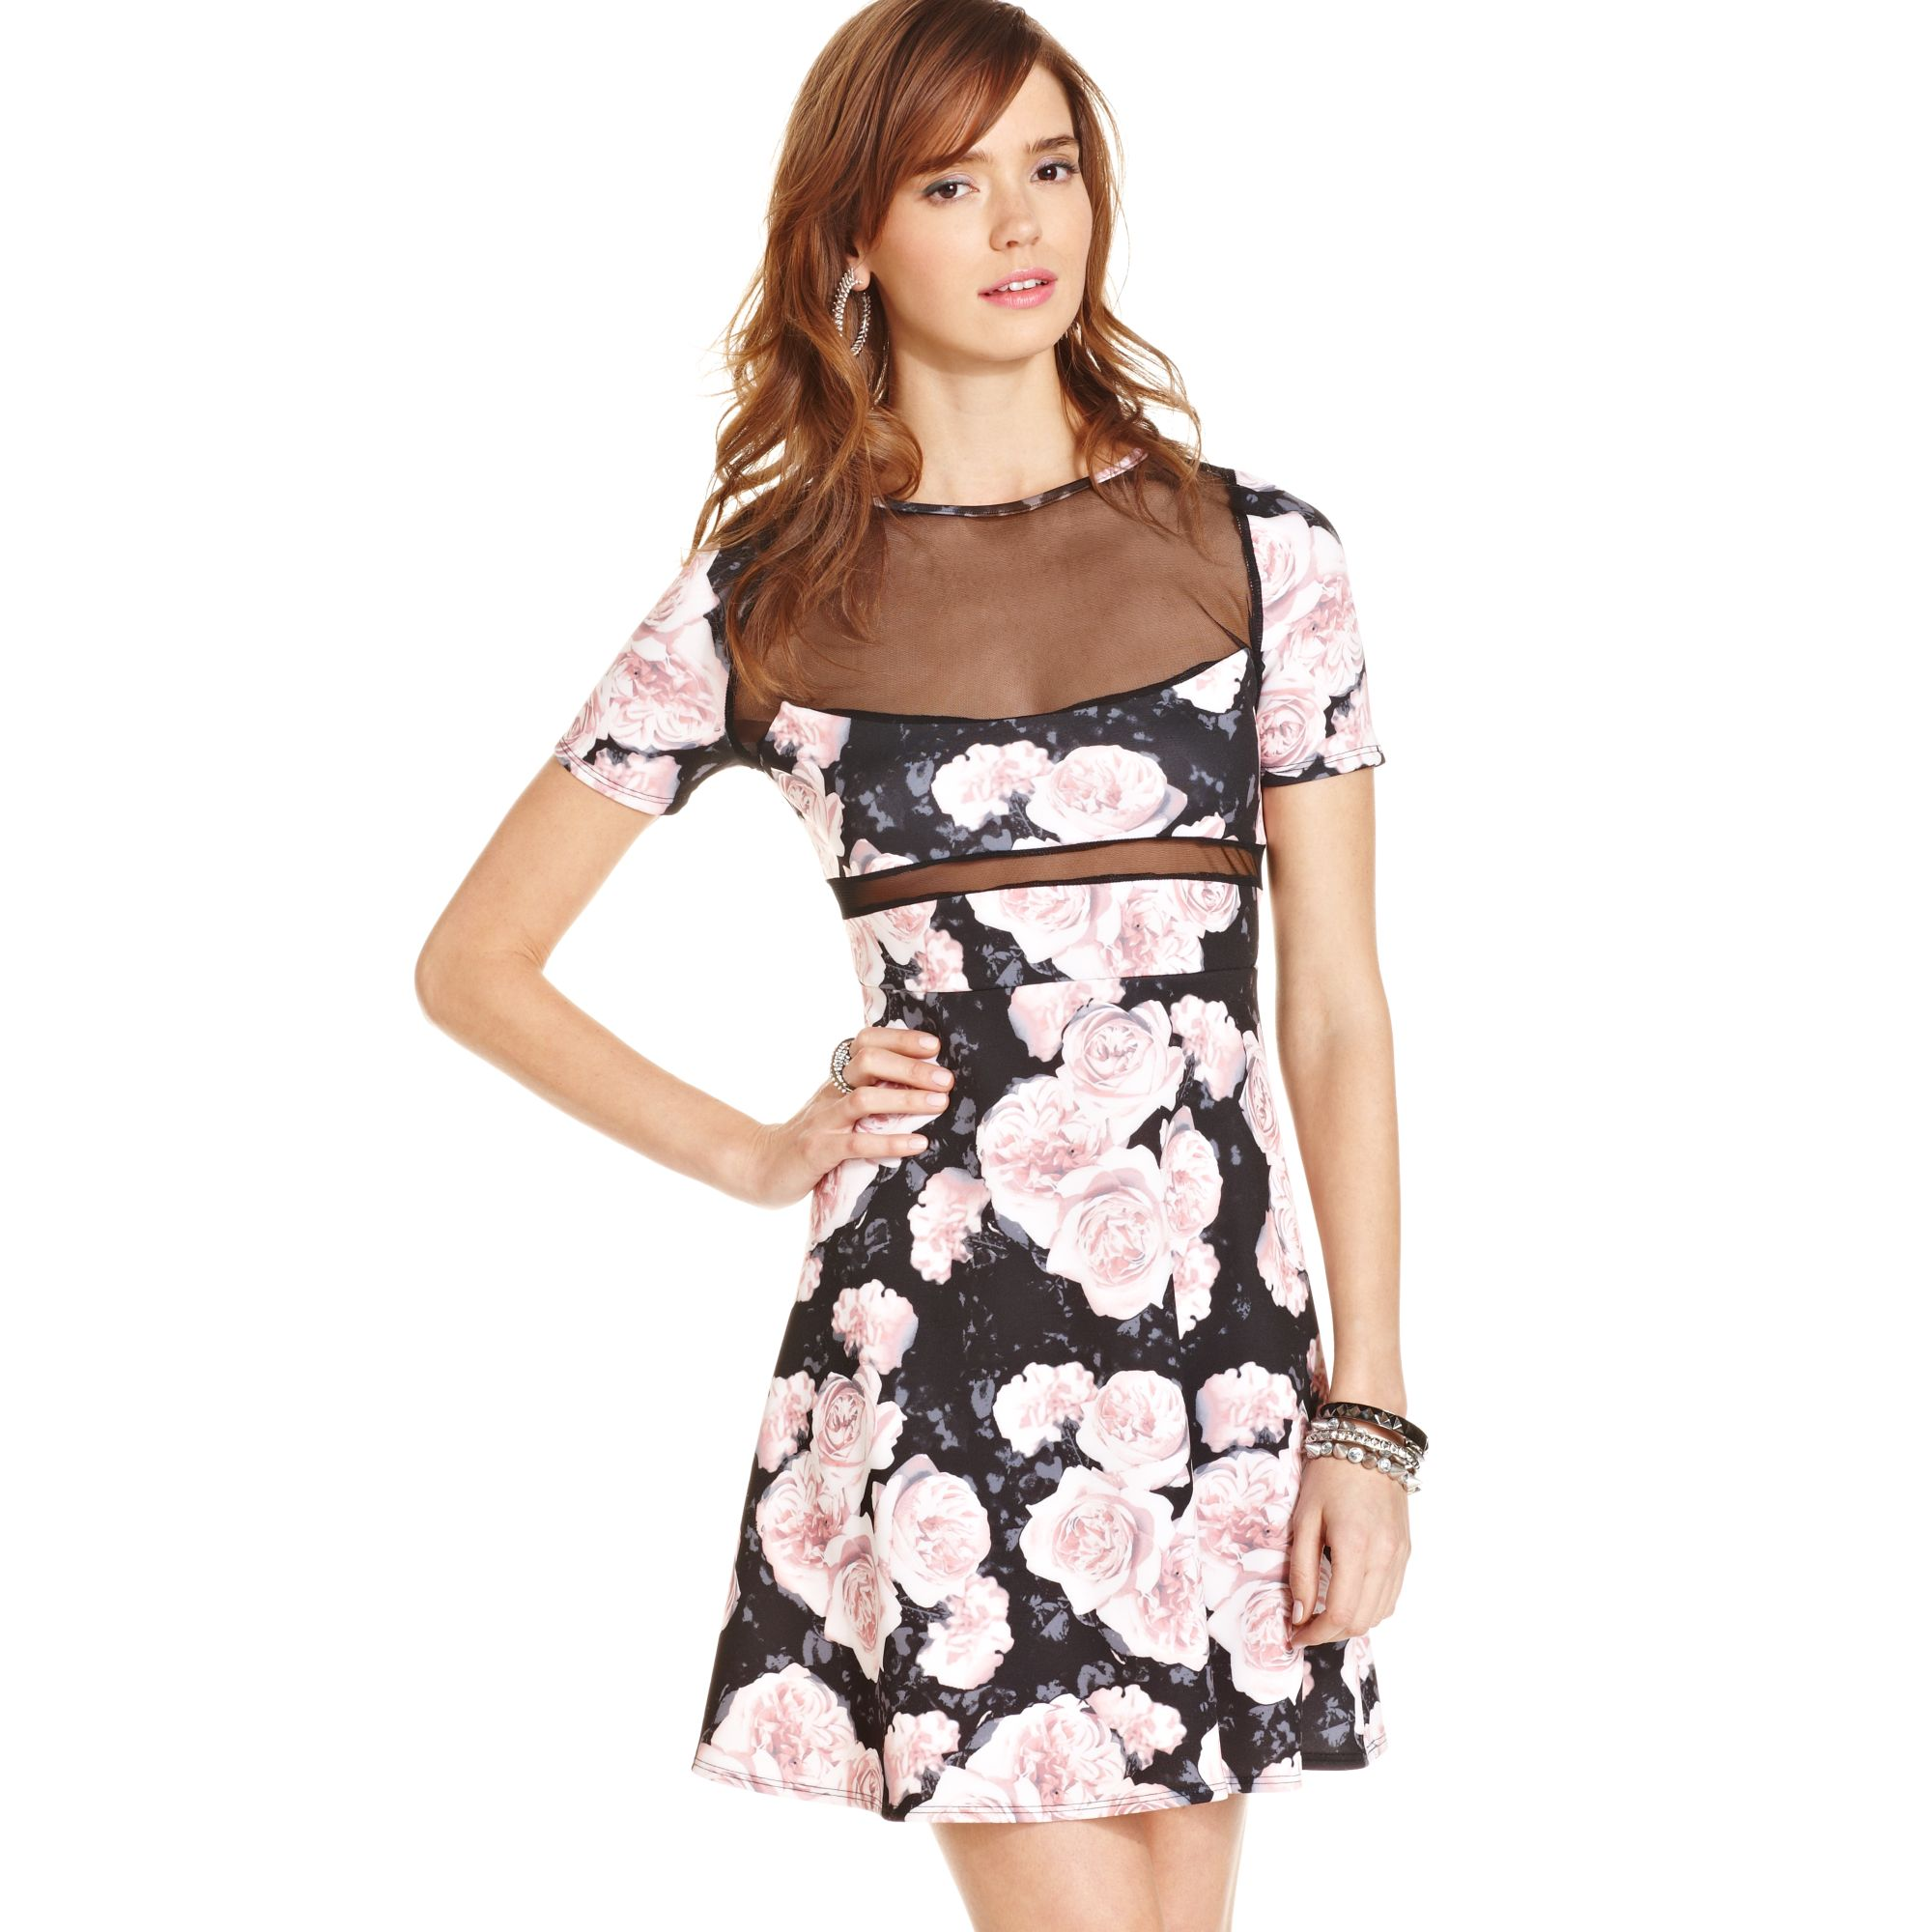 e4655badba3a Lyst - Macy s Floral Print Illusion Skater Dress